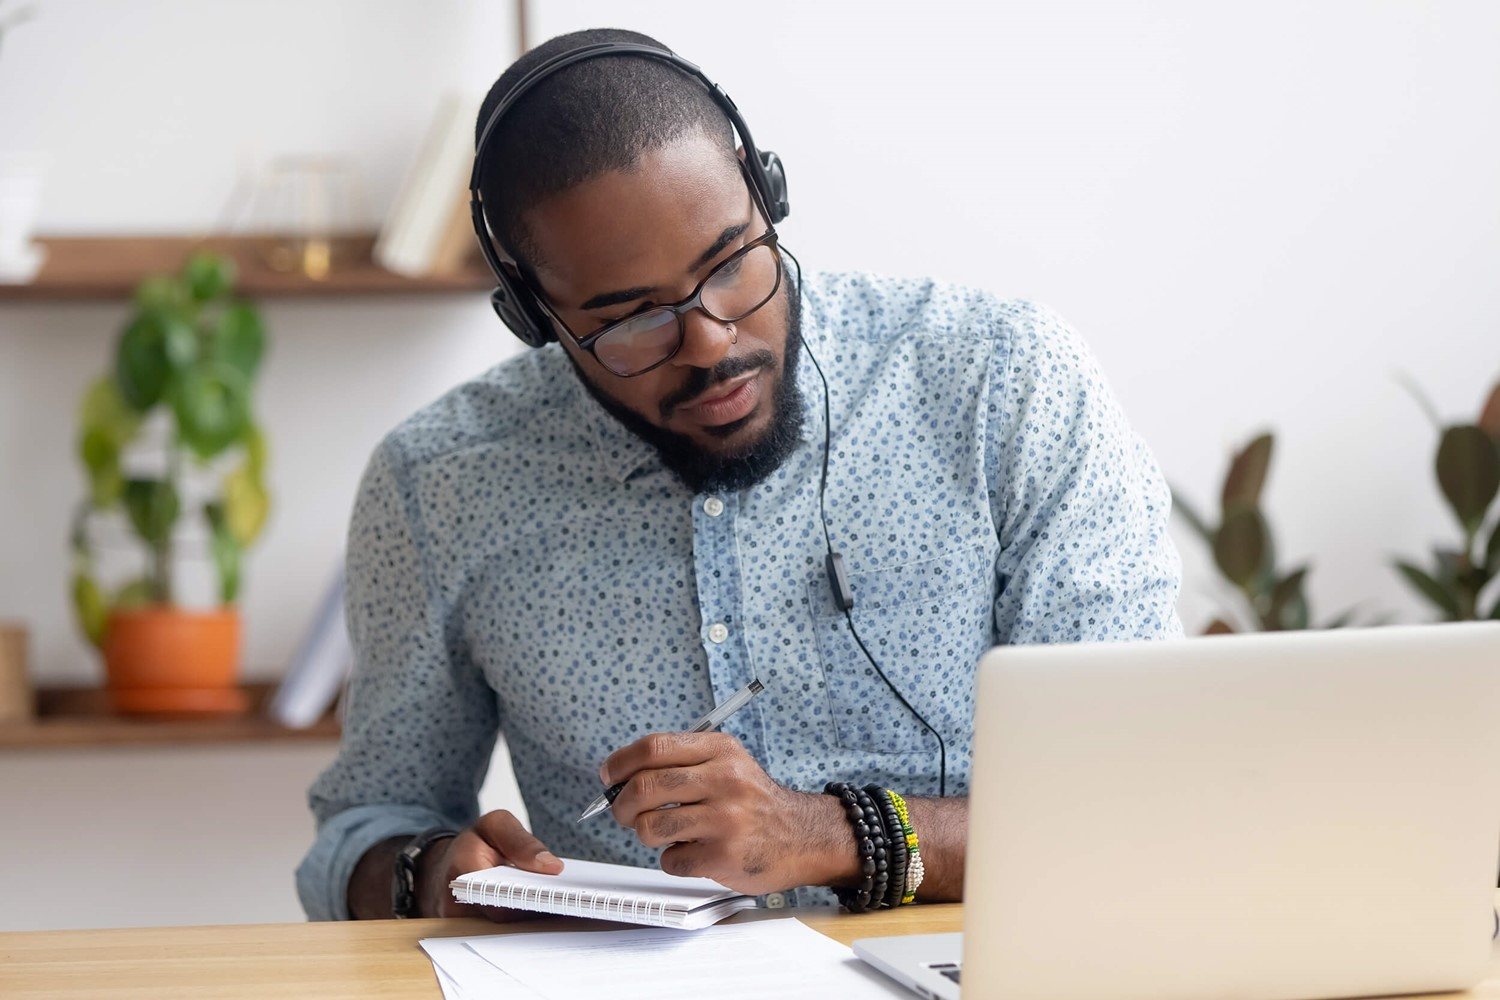 Man with headphones studying on laptop